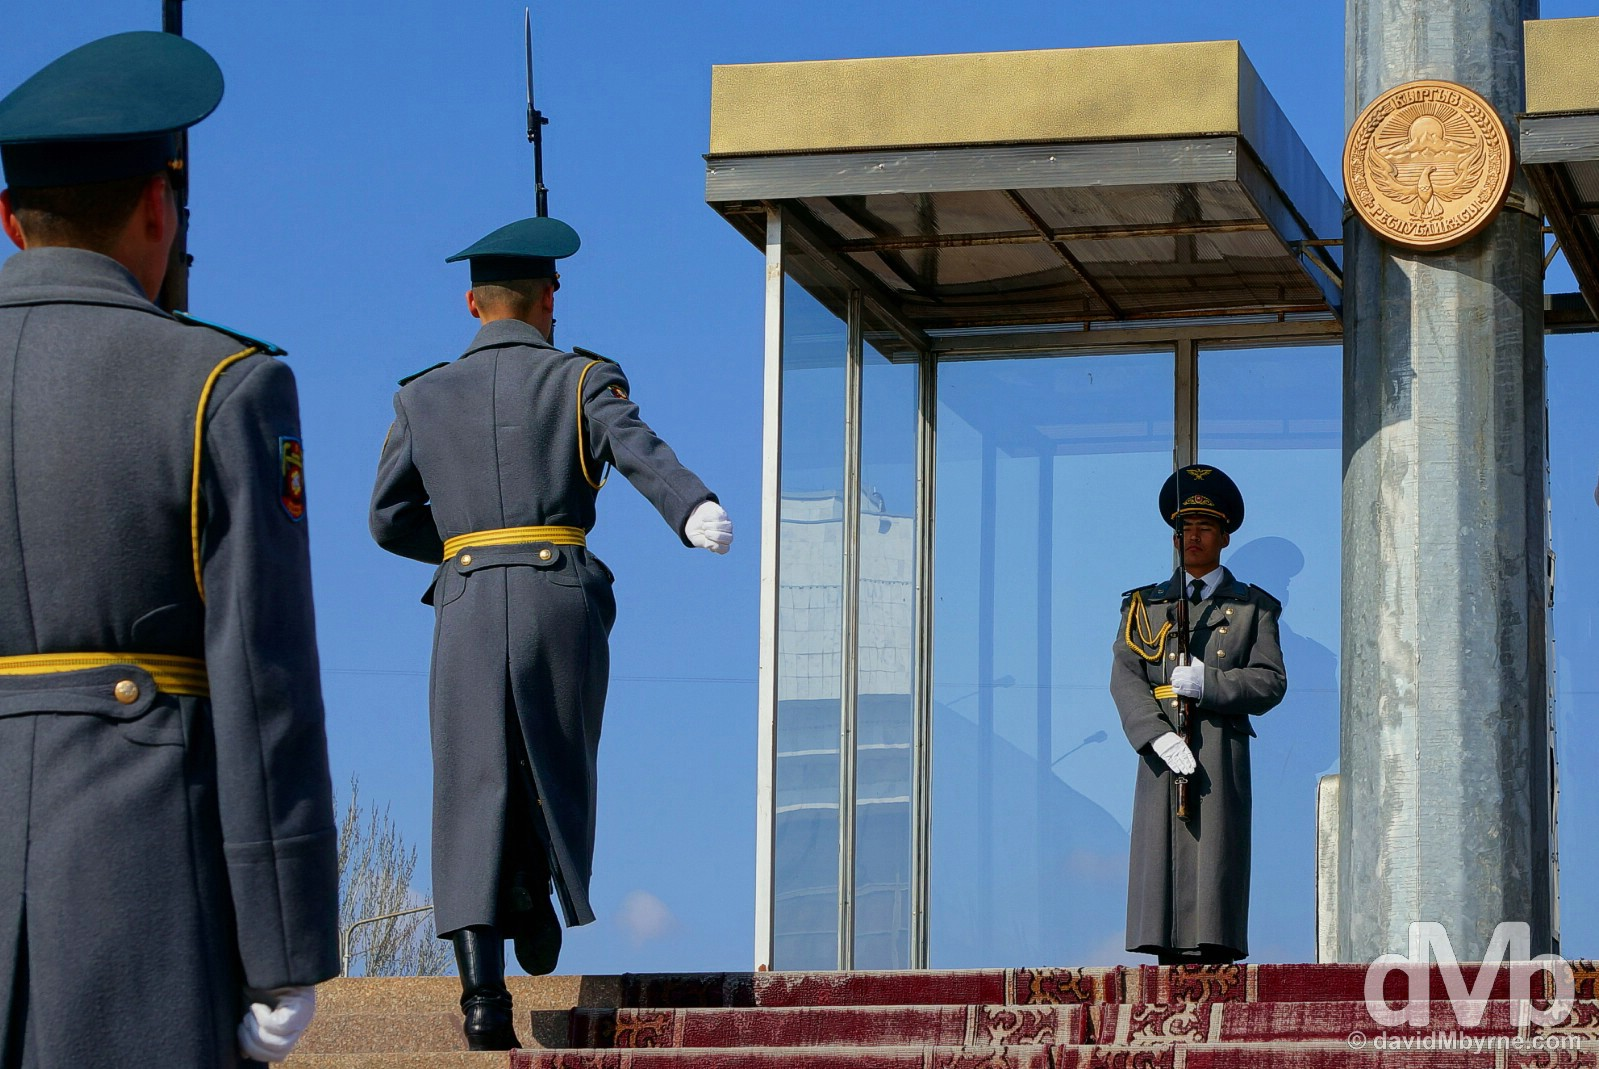 The ceremonial changing of the guard at the base of the flagpole in Ala-Too Square, central Bishkek, Kyrgyzstan. February 27, 2015.